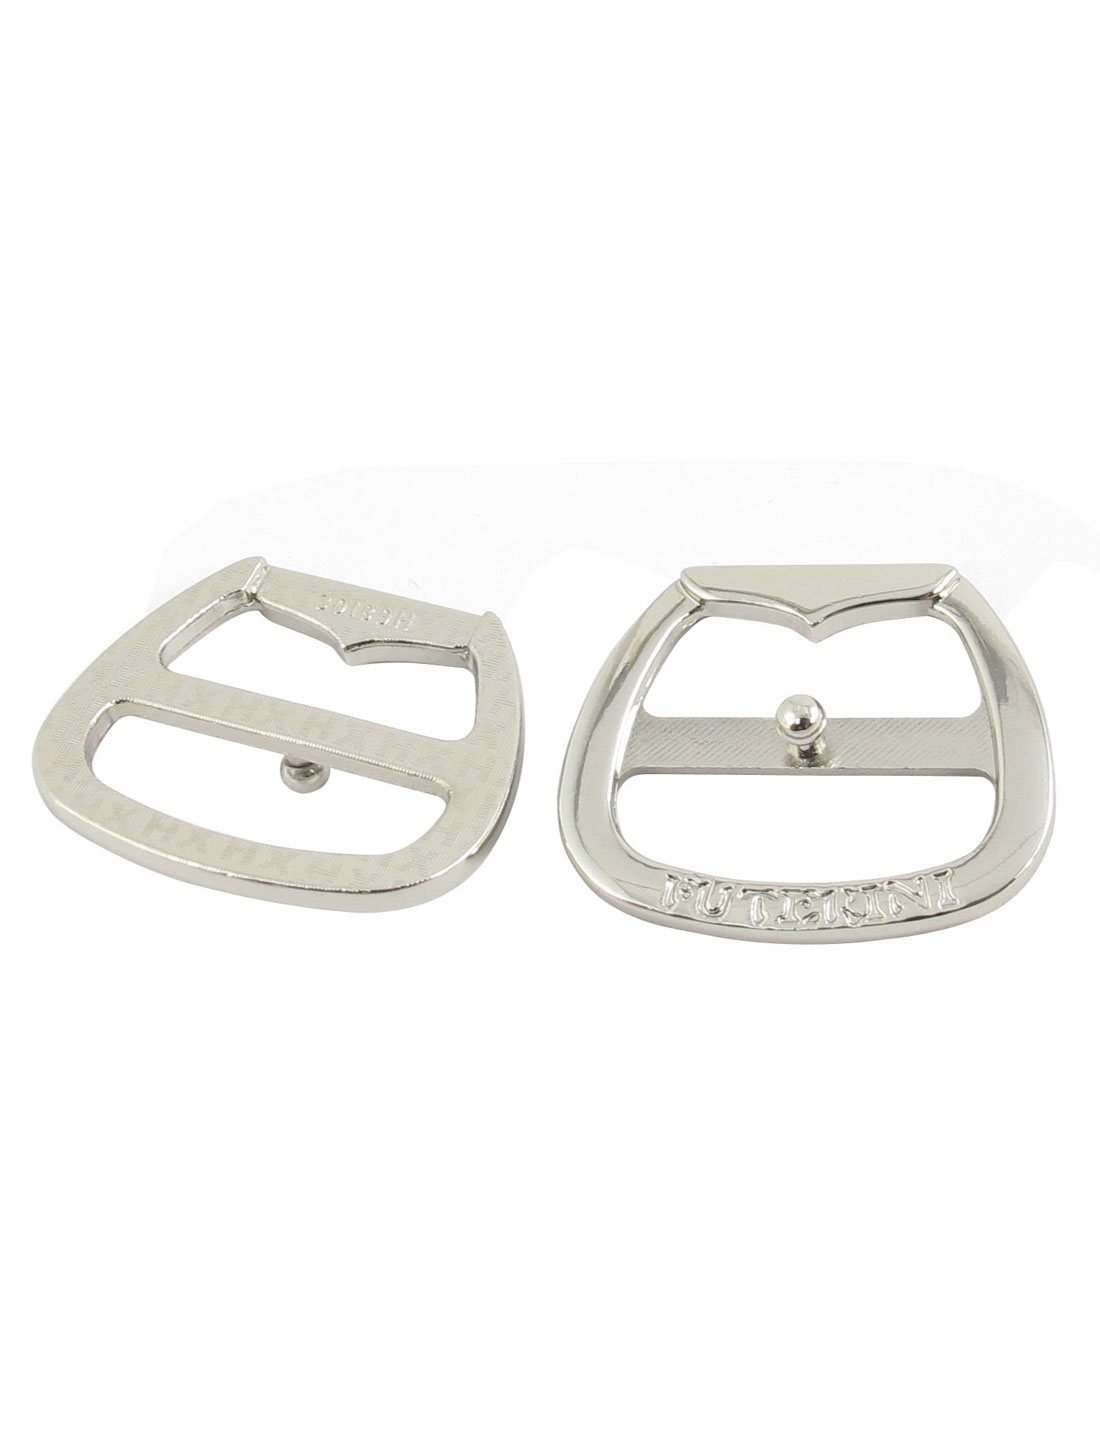 2 Pcs 3.5 x 3cm Silver Tone Metal Single Pin Buckle for Snap In Belt